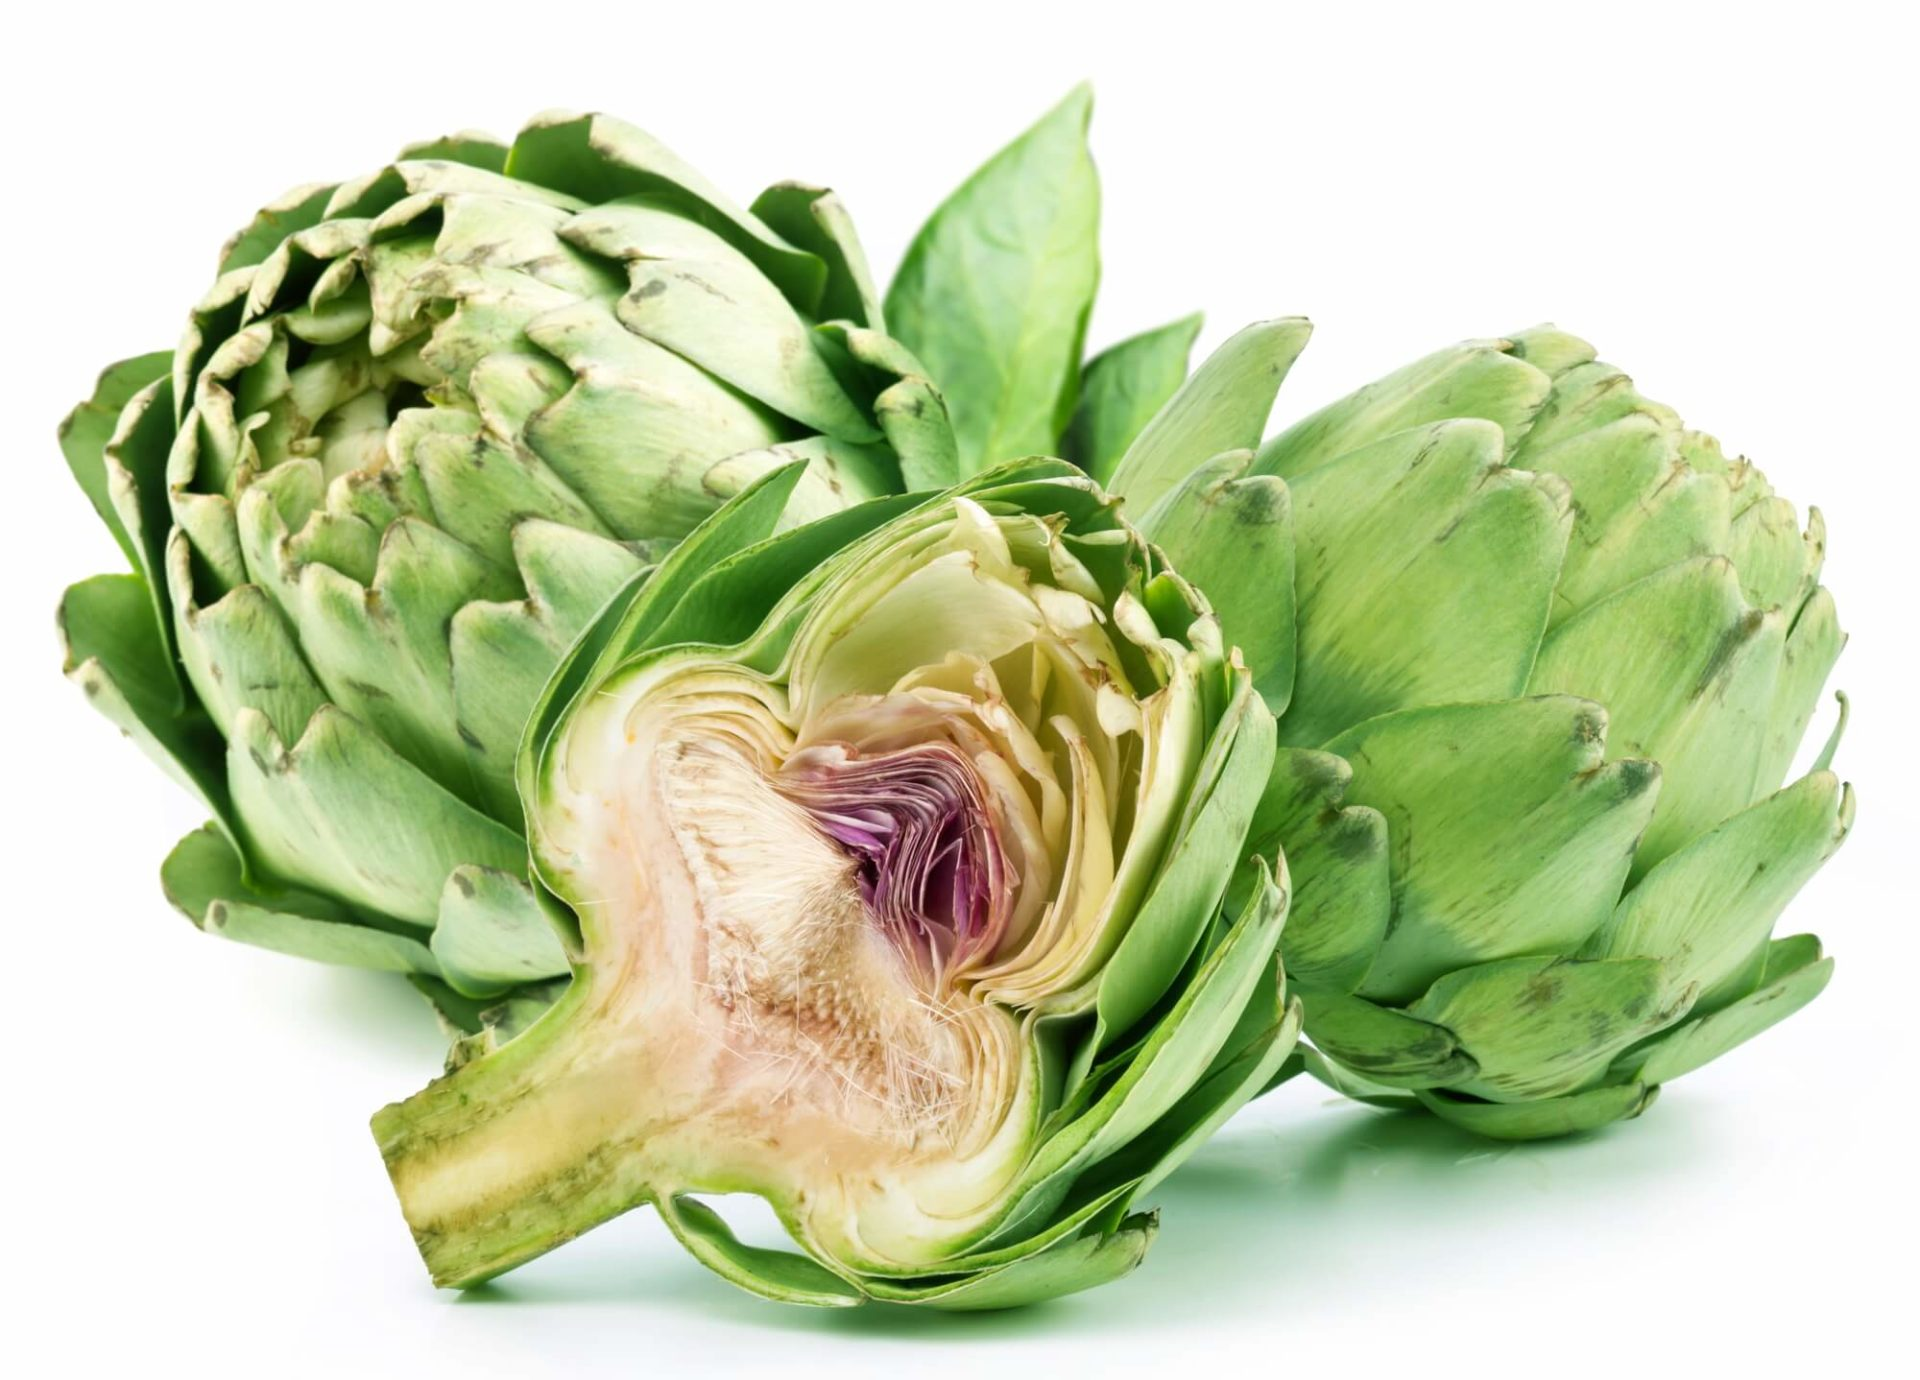 Artichoke: How to Select, Store and Serve